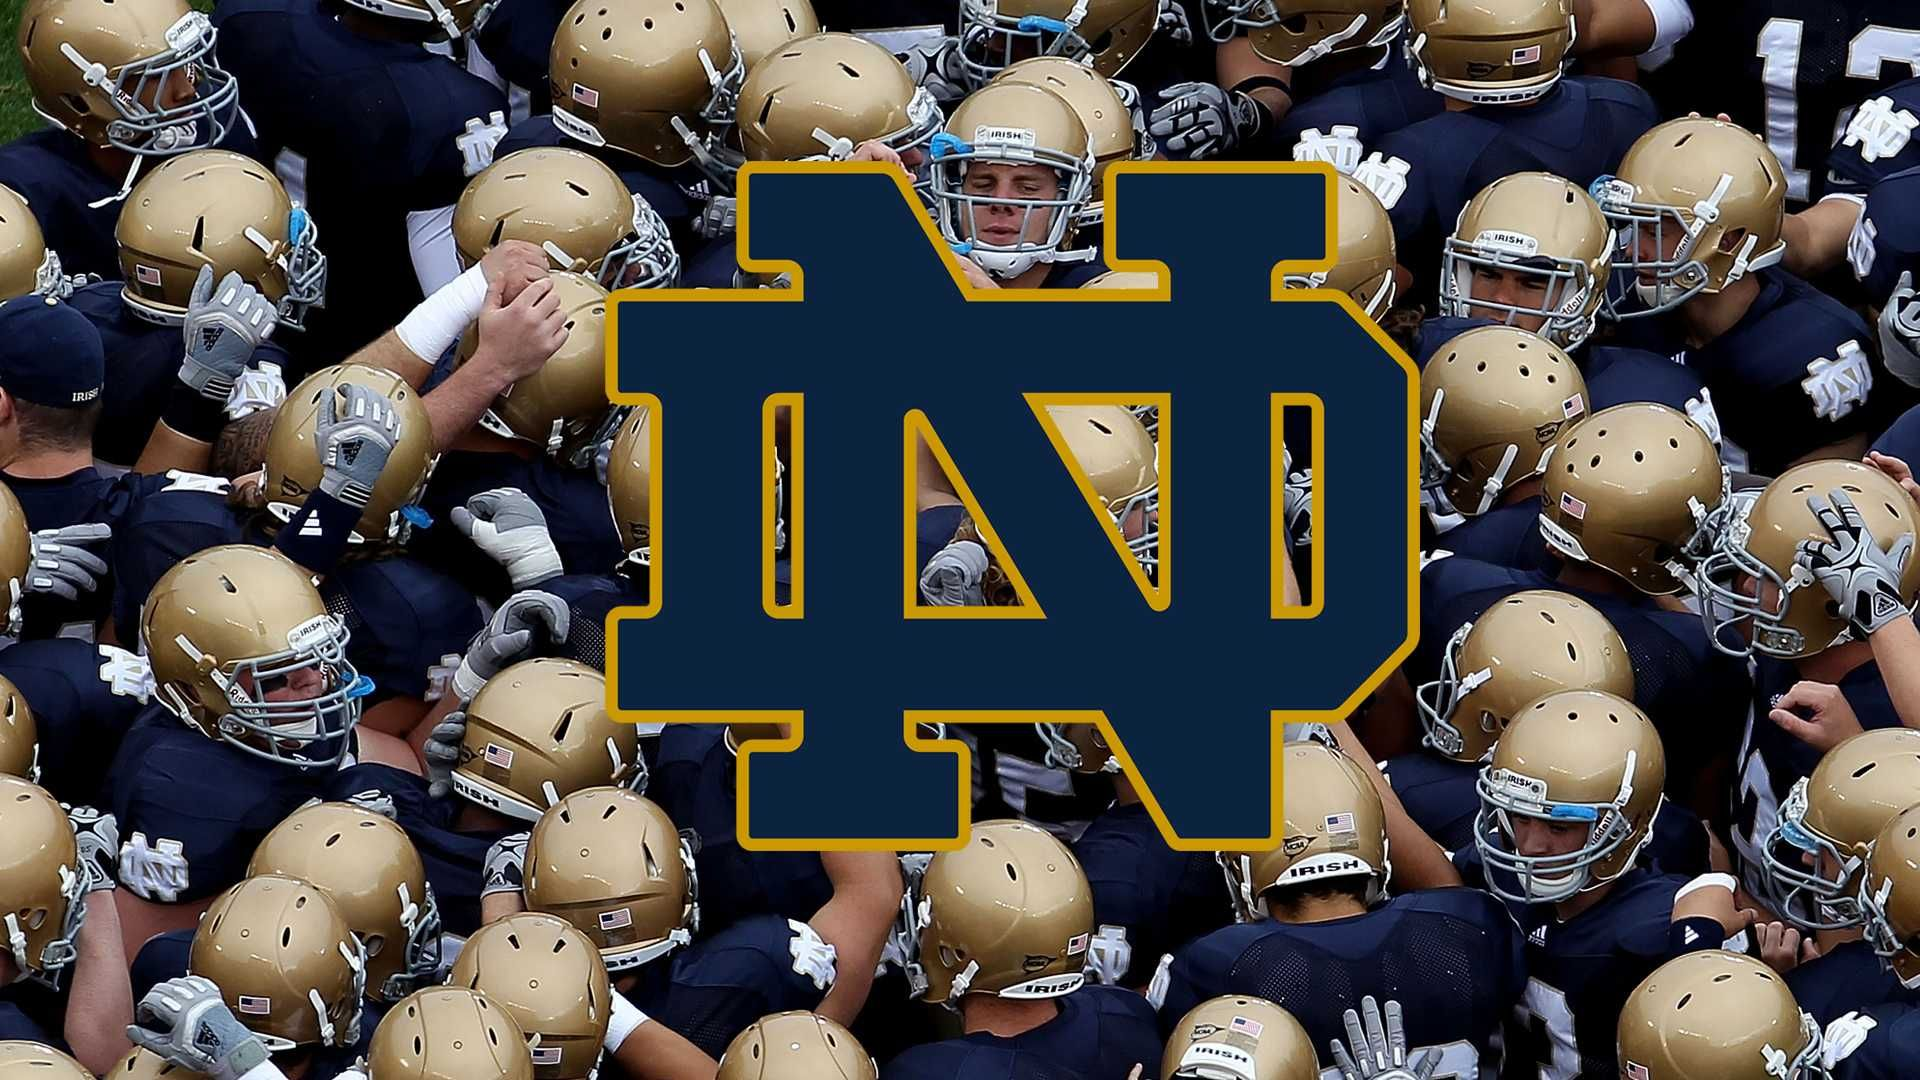 Notre Dame Fighting Irish Football Wallpapers (With images